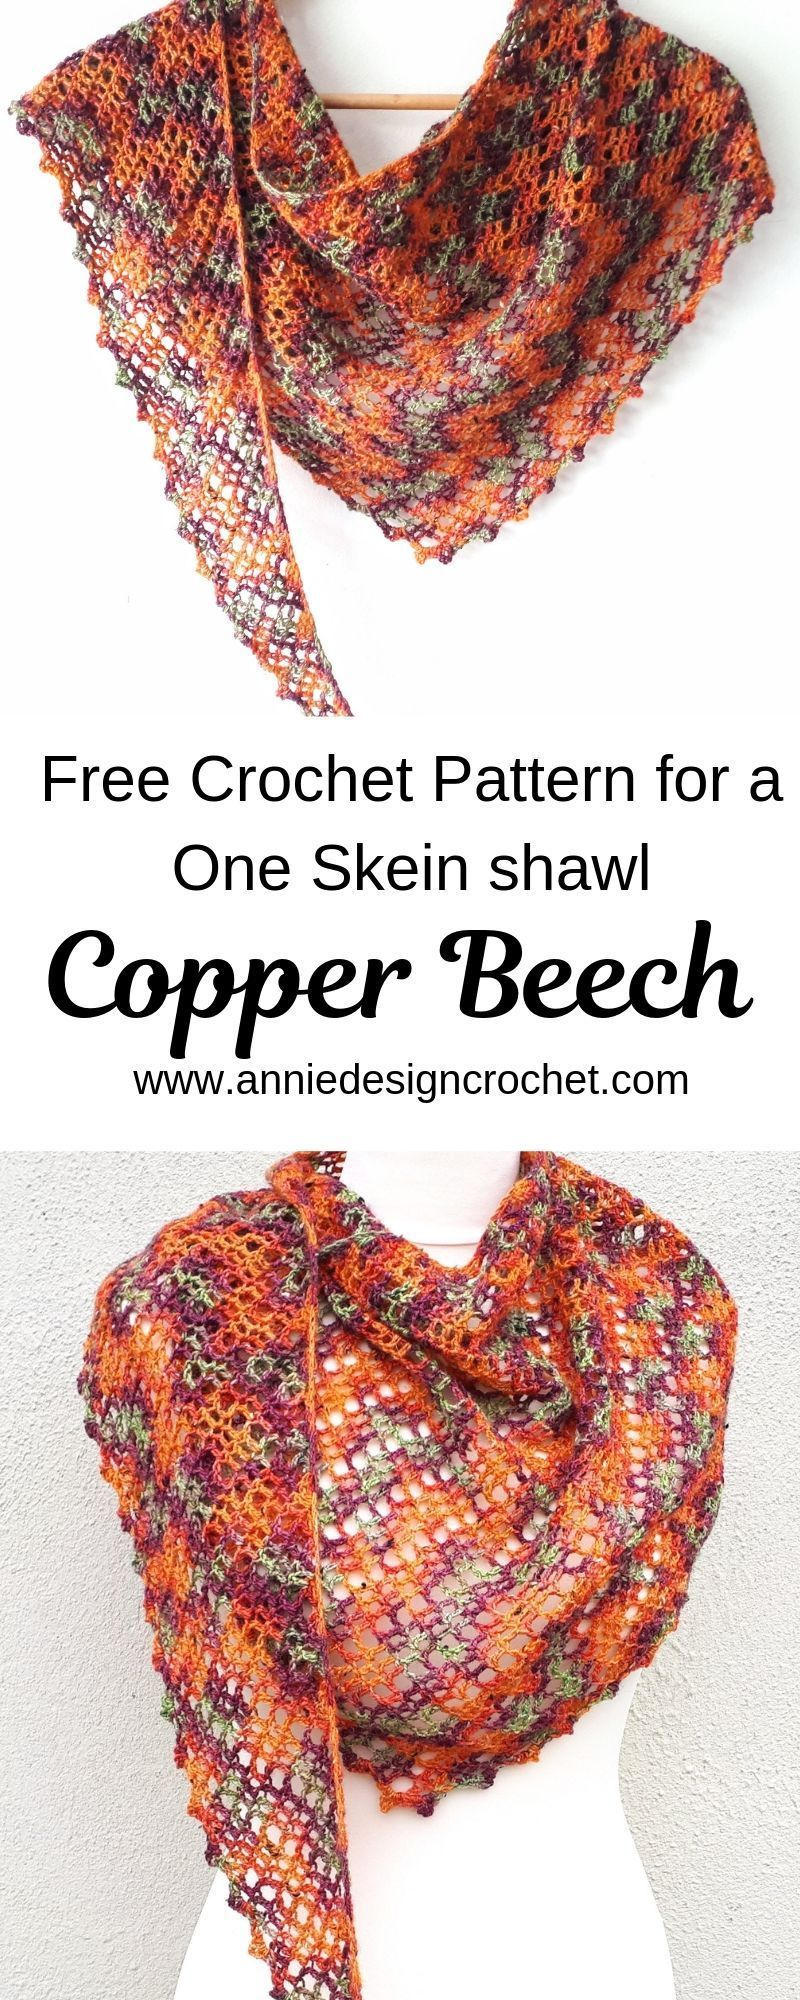 Free pattern for a one skein crochet shawl. Perfect for that precious skein of Indie Dyed yarn you have been saving. The easy beginner shawl pattern is a narrow, asymmetric design that can be draped as a shawl or wound around the neck as a scarf. #crochetscarves